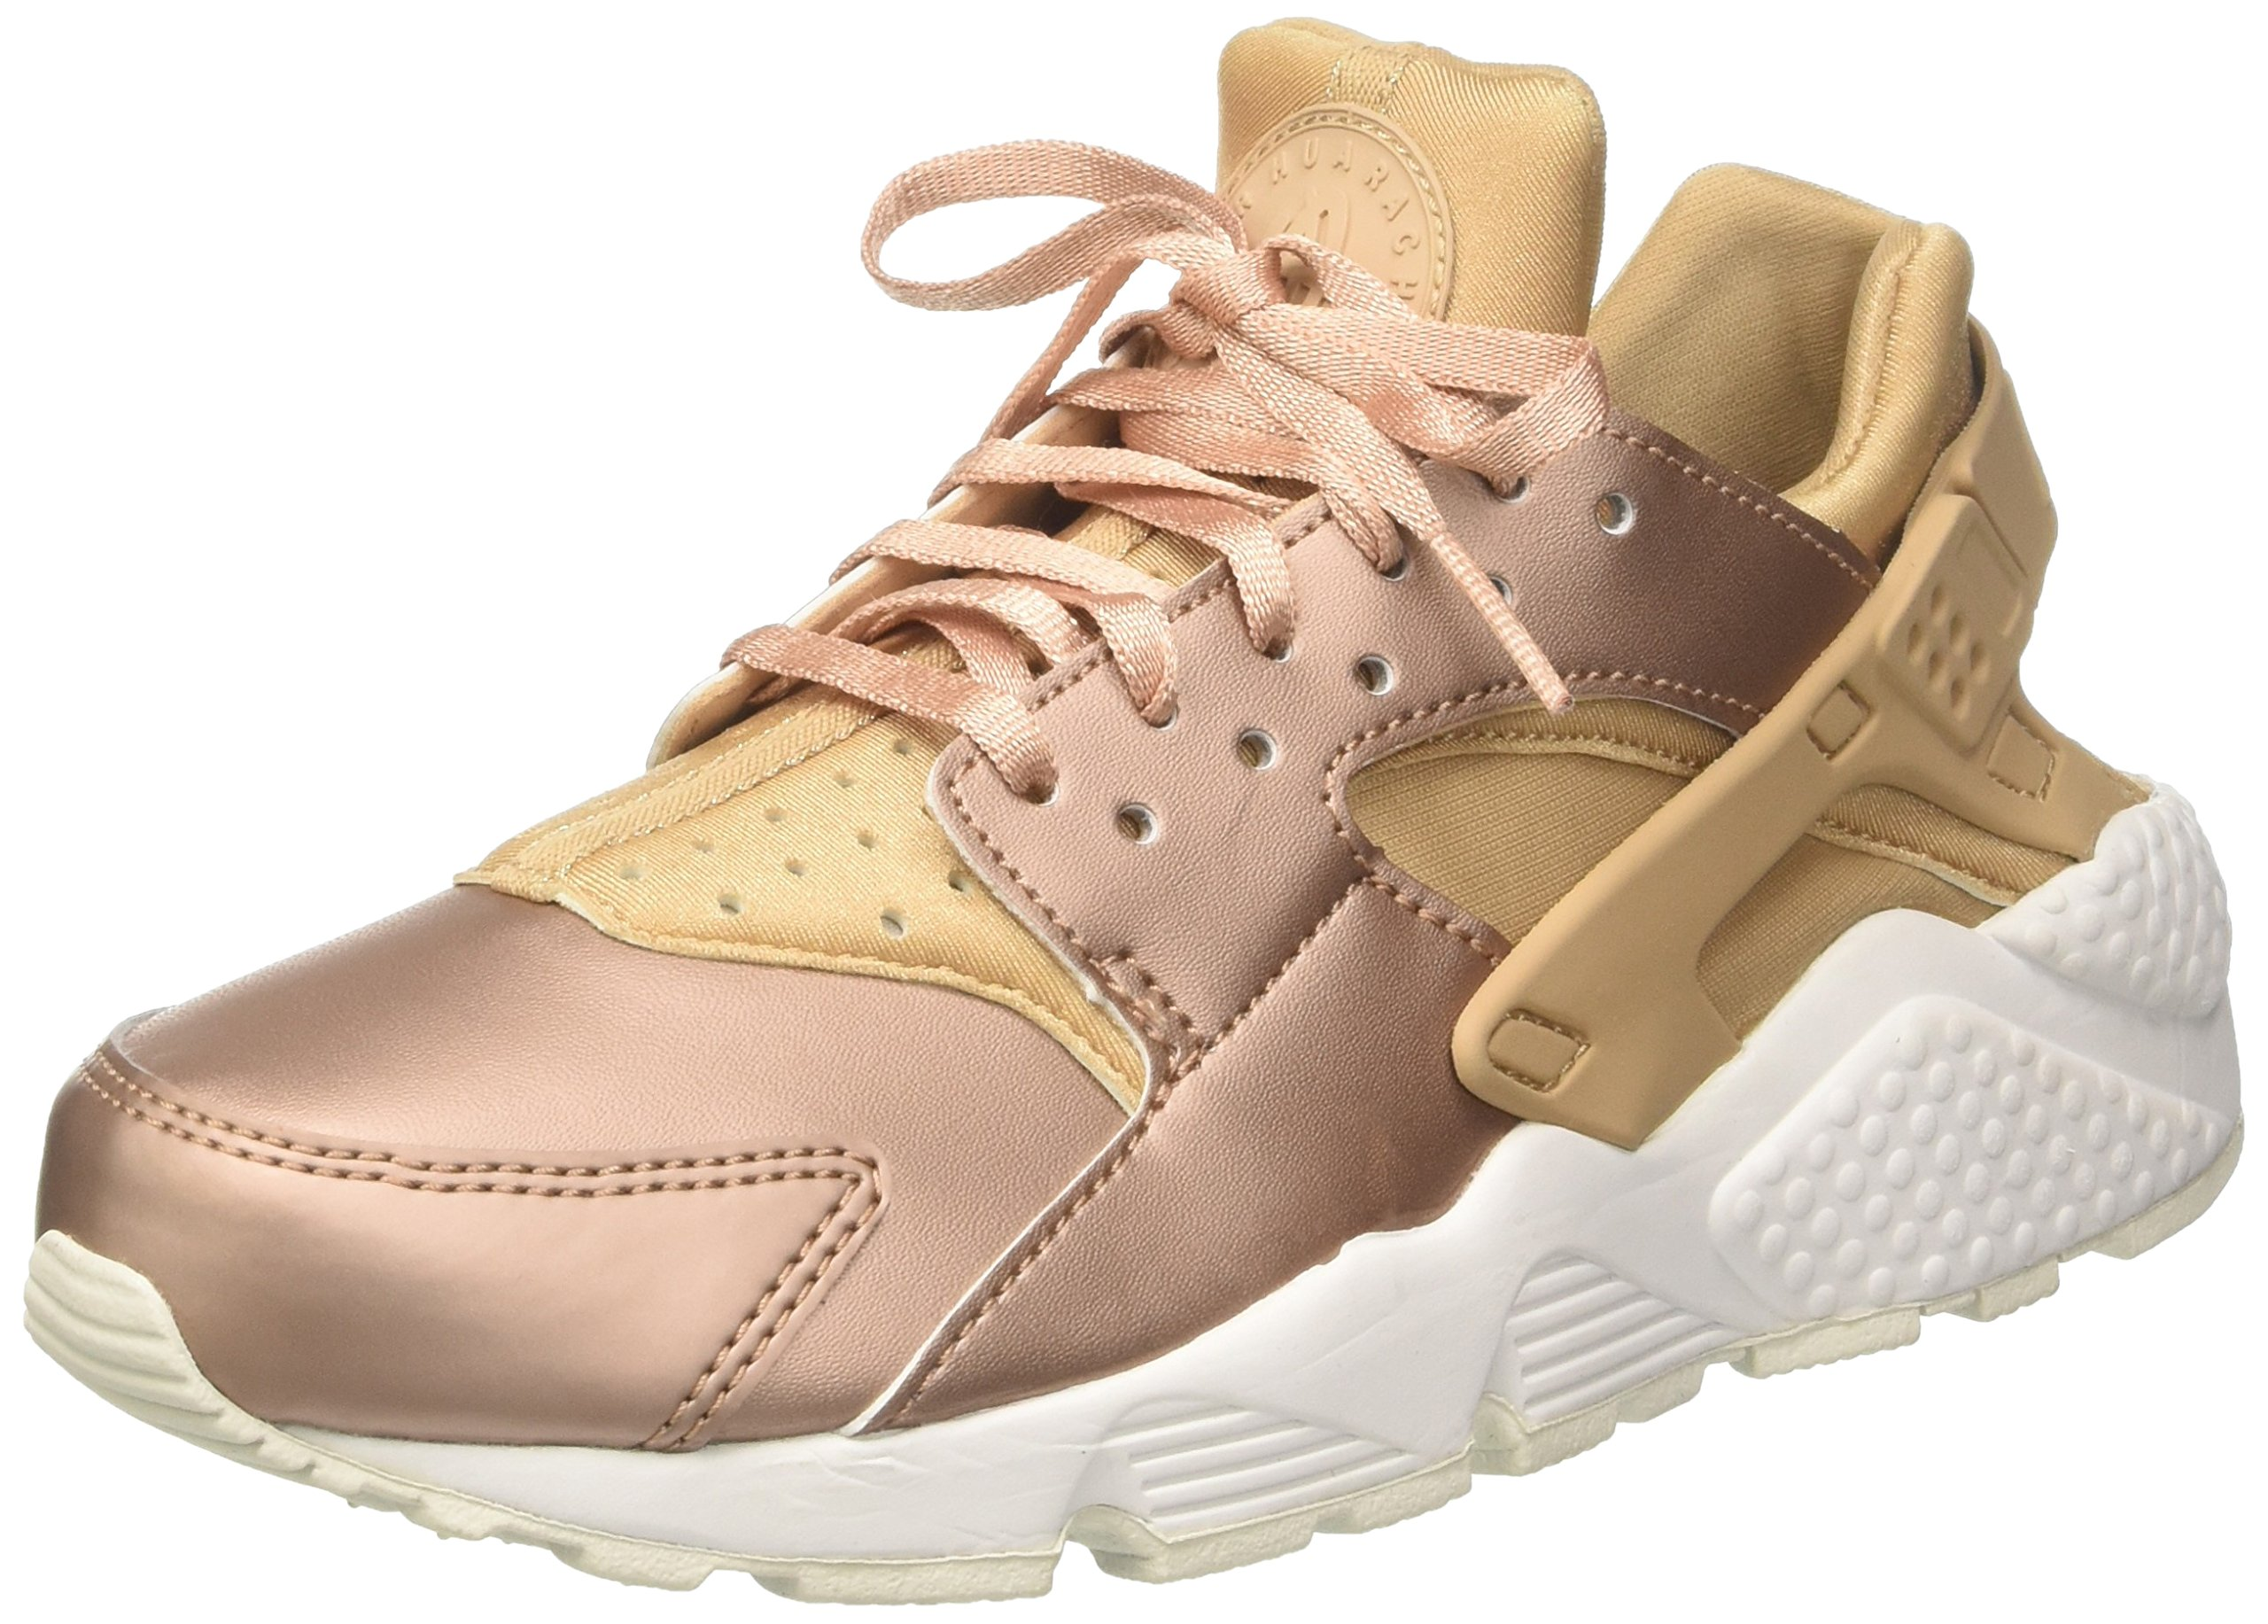 Nike Air Huarache Run Pemium TXT Womens Shoes Elm/Metallic Red Bronze aa0523-200 (8.5 B(M) US)